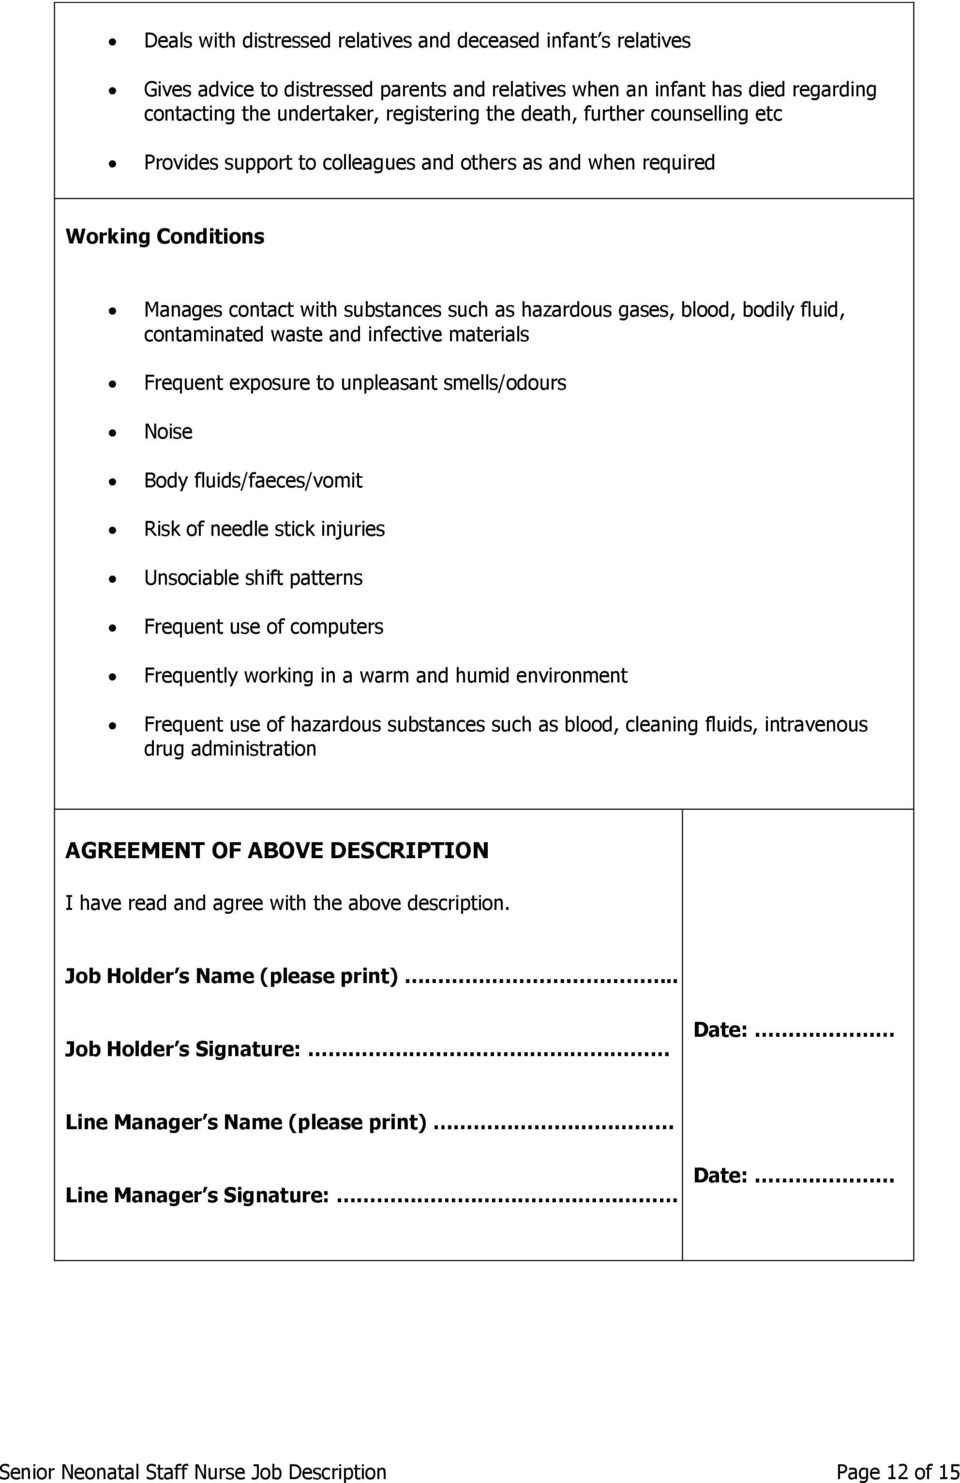 job description of clinical lead nurse cover letter templates job description of clinical lead nurse example job description for american association of manager lead nurse